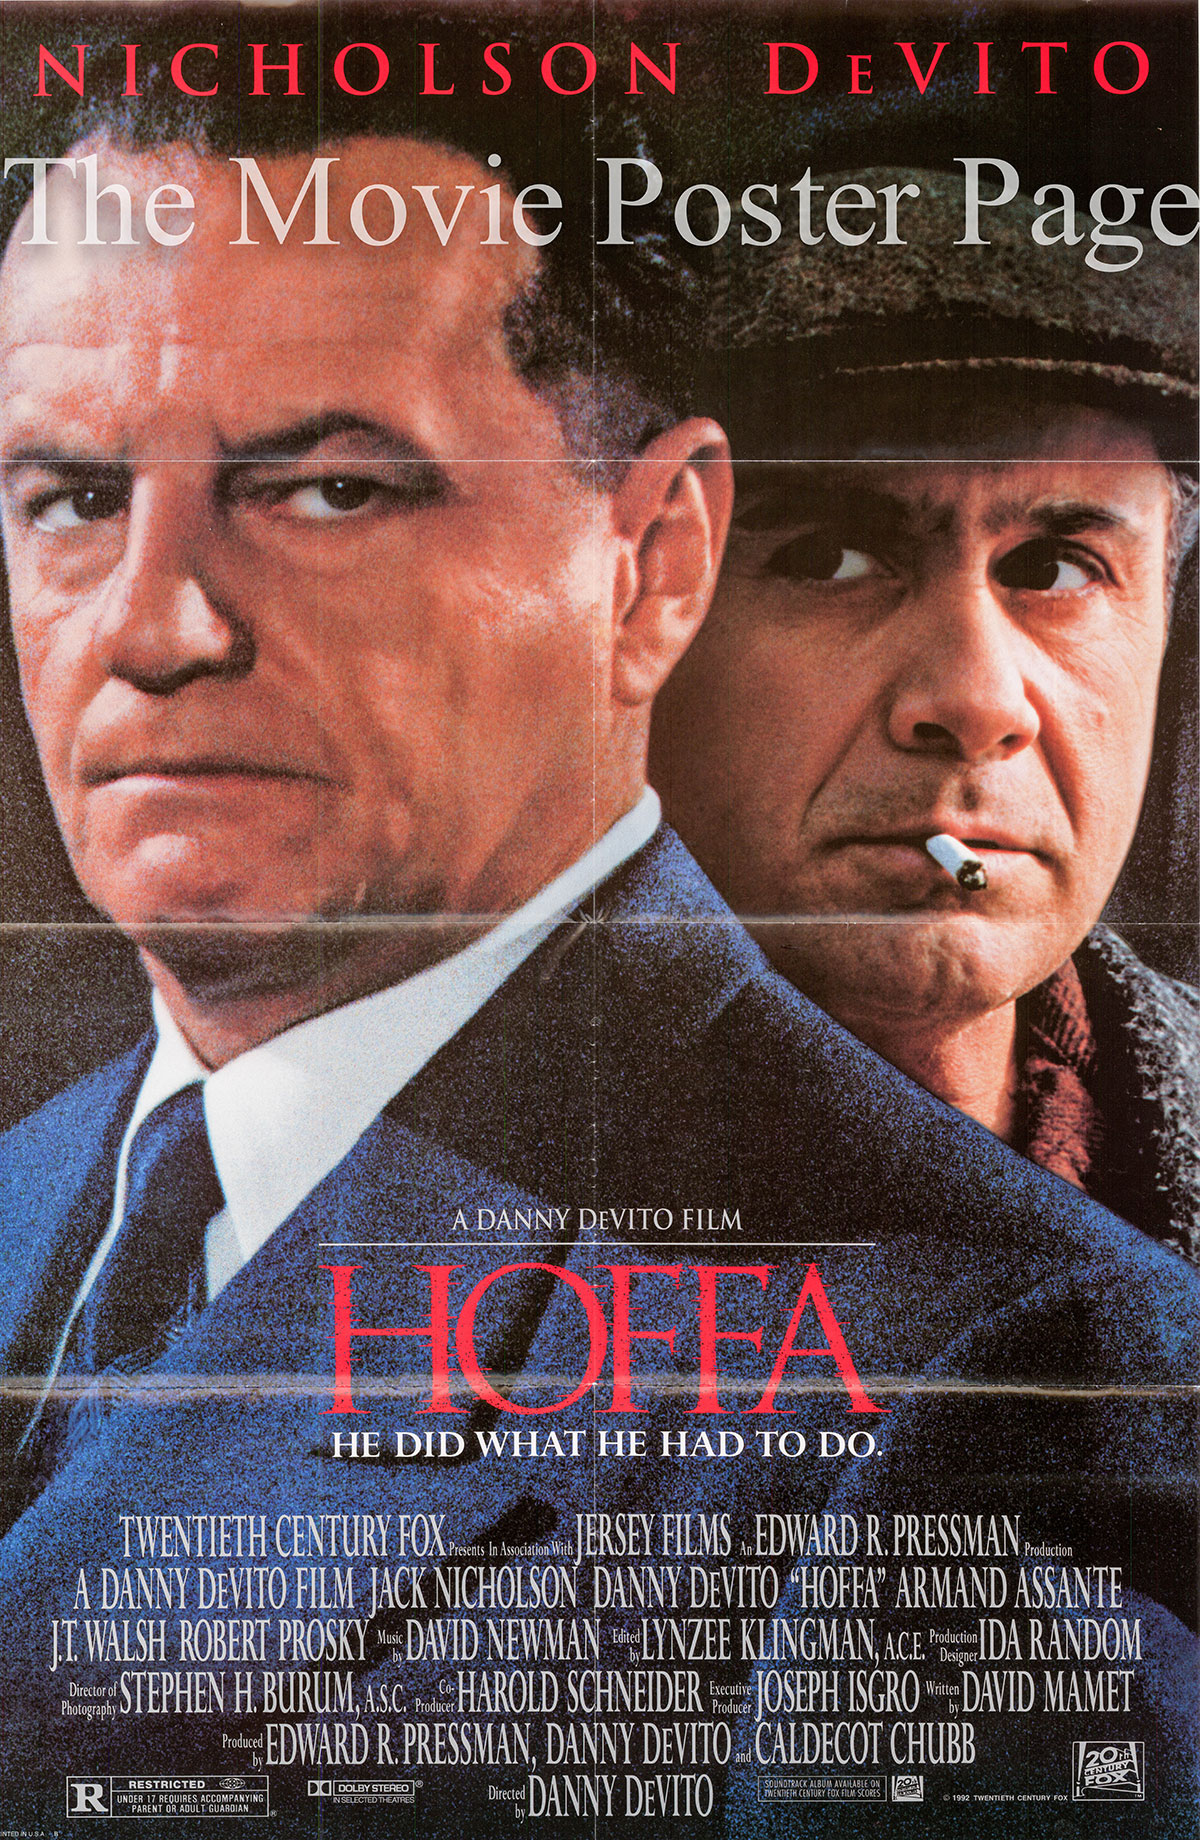 Pictured is the 1992 Danny DeVito film Hoffa starring Jack Nicholson as Jimmy Hoffa.